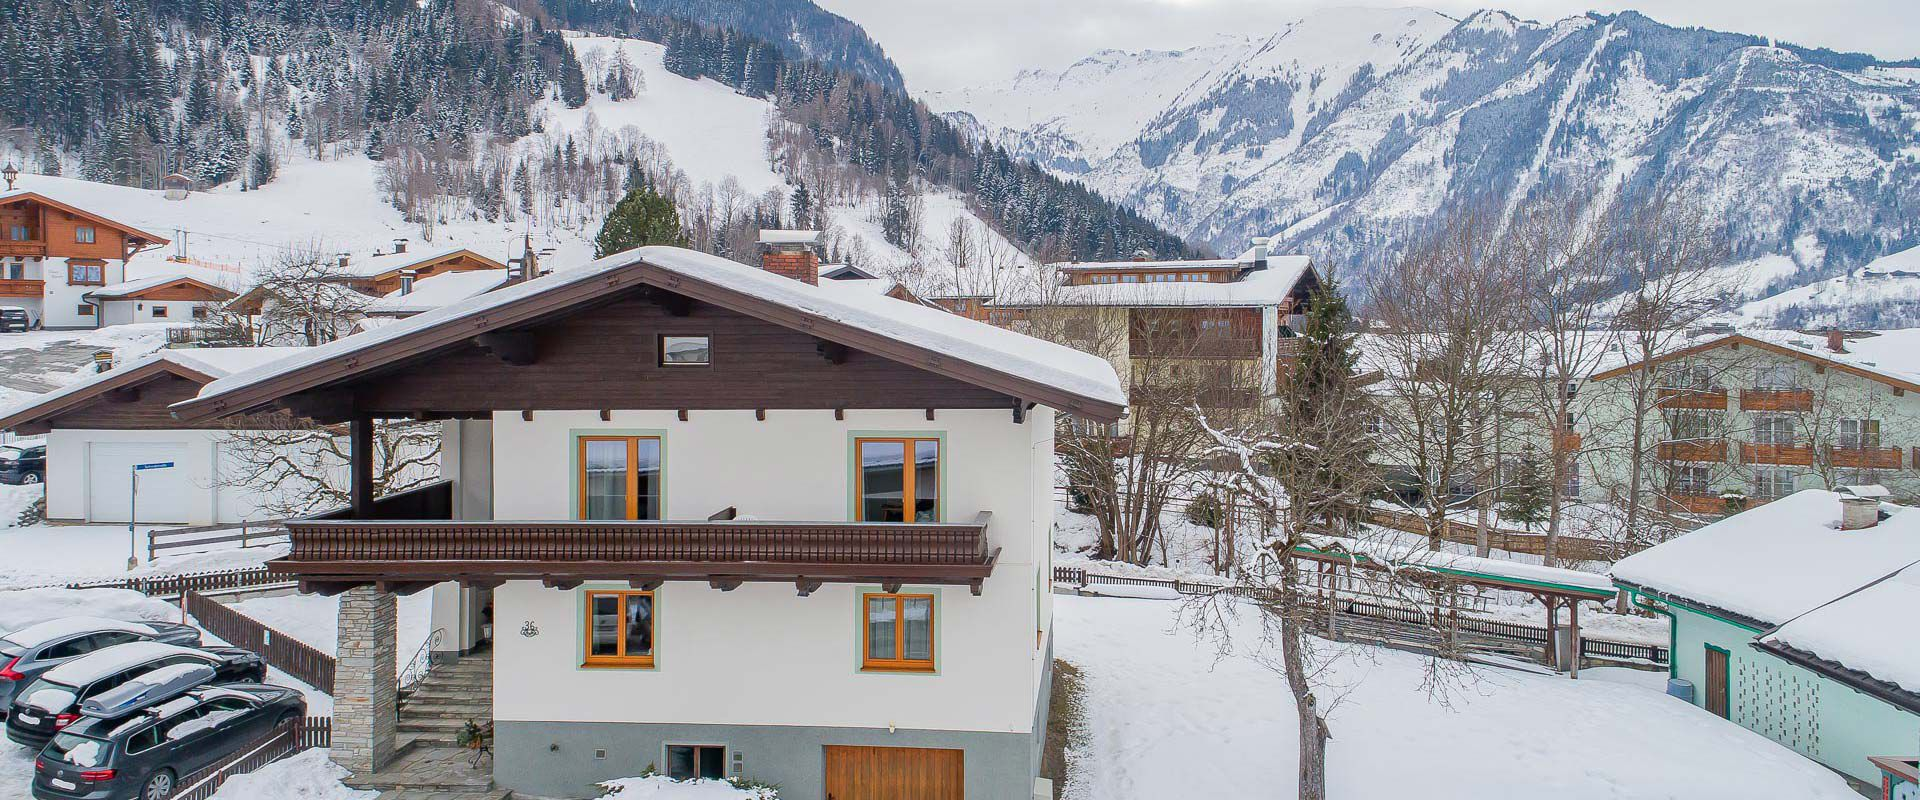 Chalet Alpin Kaprun Winter 0014